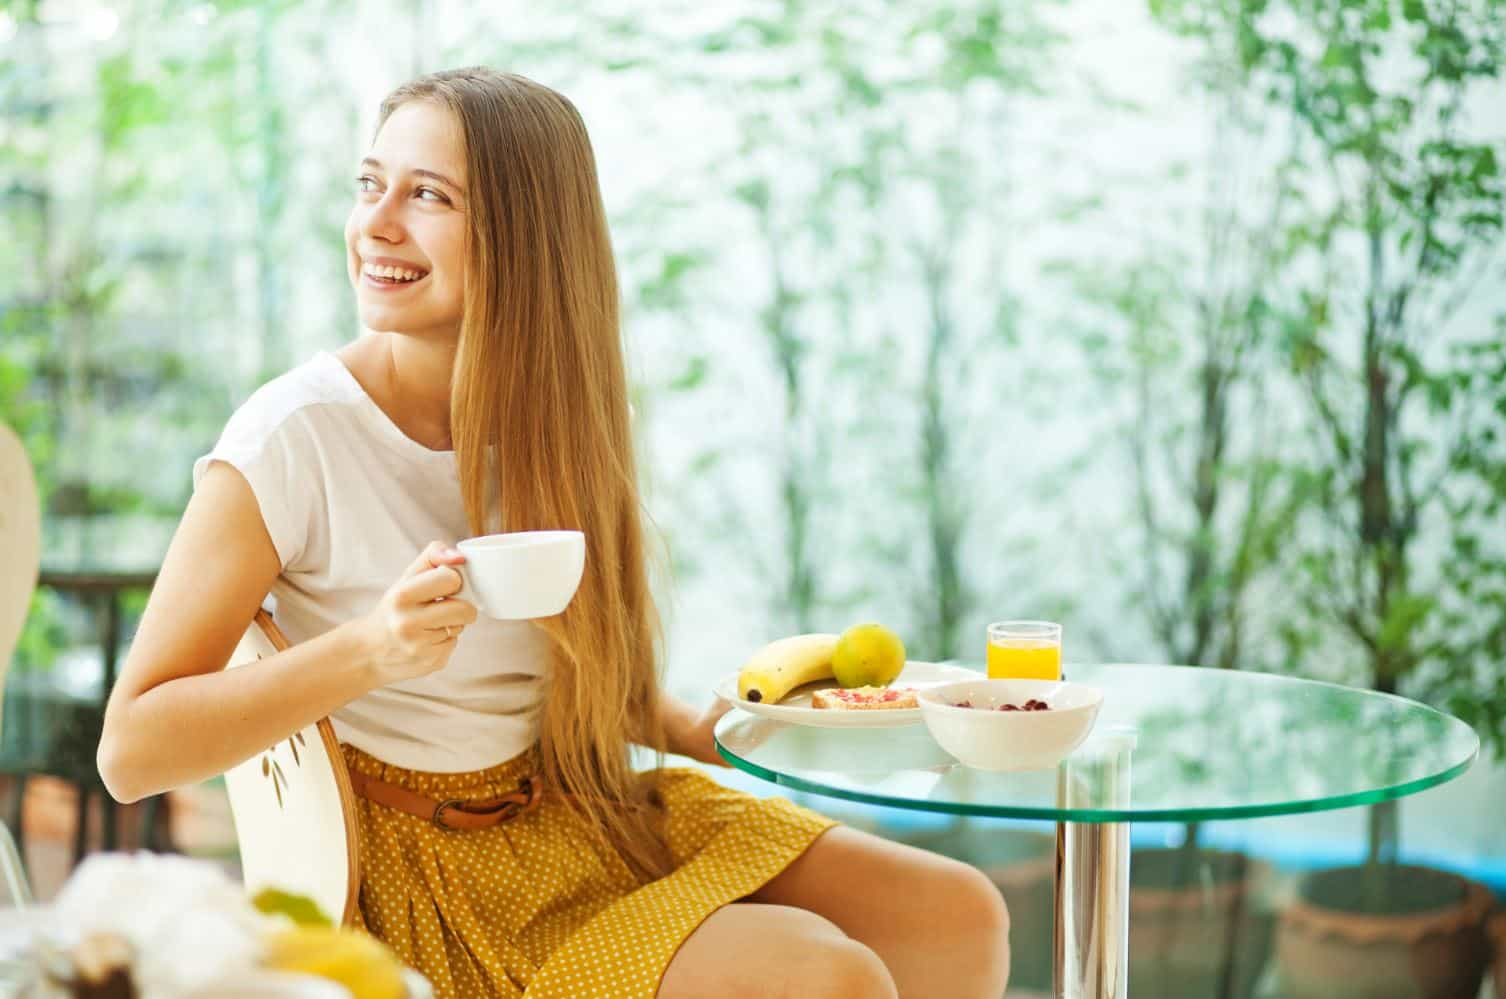 Seven-Days-of-Stamina-5-Benefits-of-a-Weekly-Detox Seven Days of Stamina: 5 Benefits of a Weekly Detox